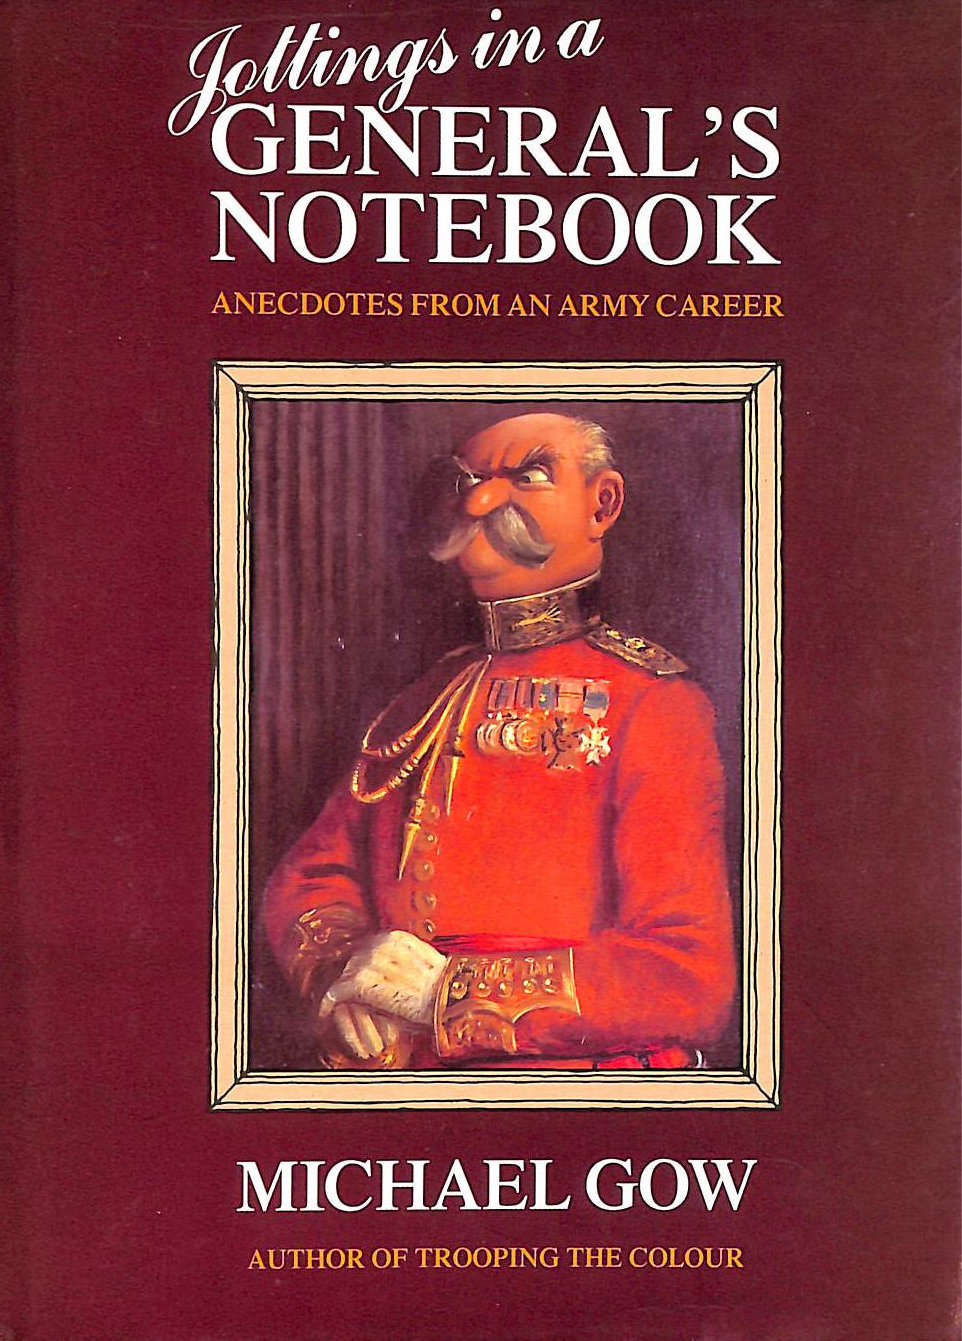 Image for Jottings In A General's Notebook